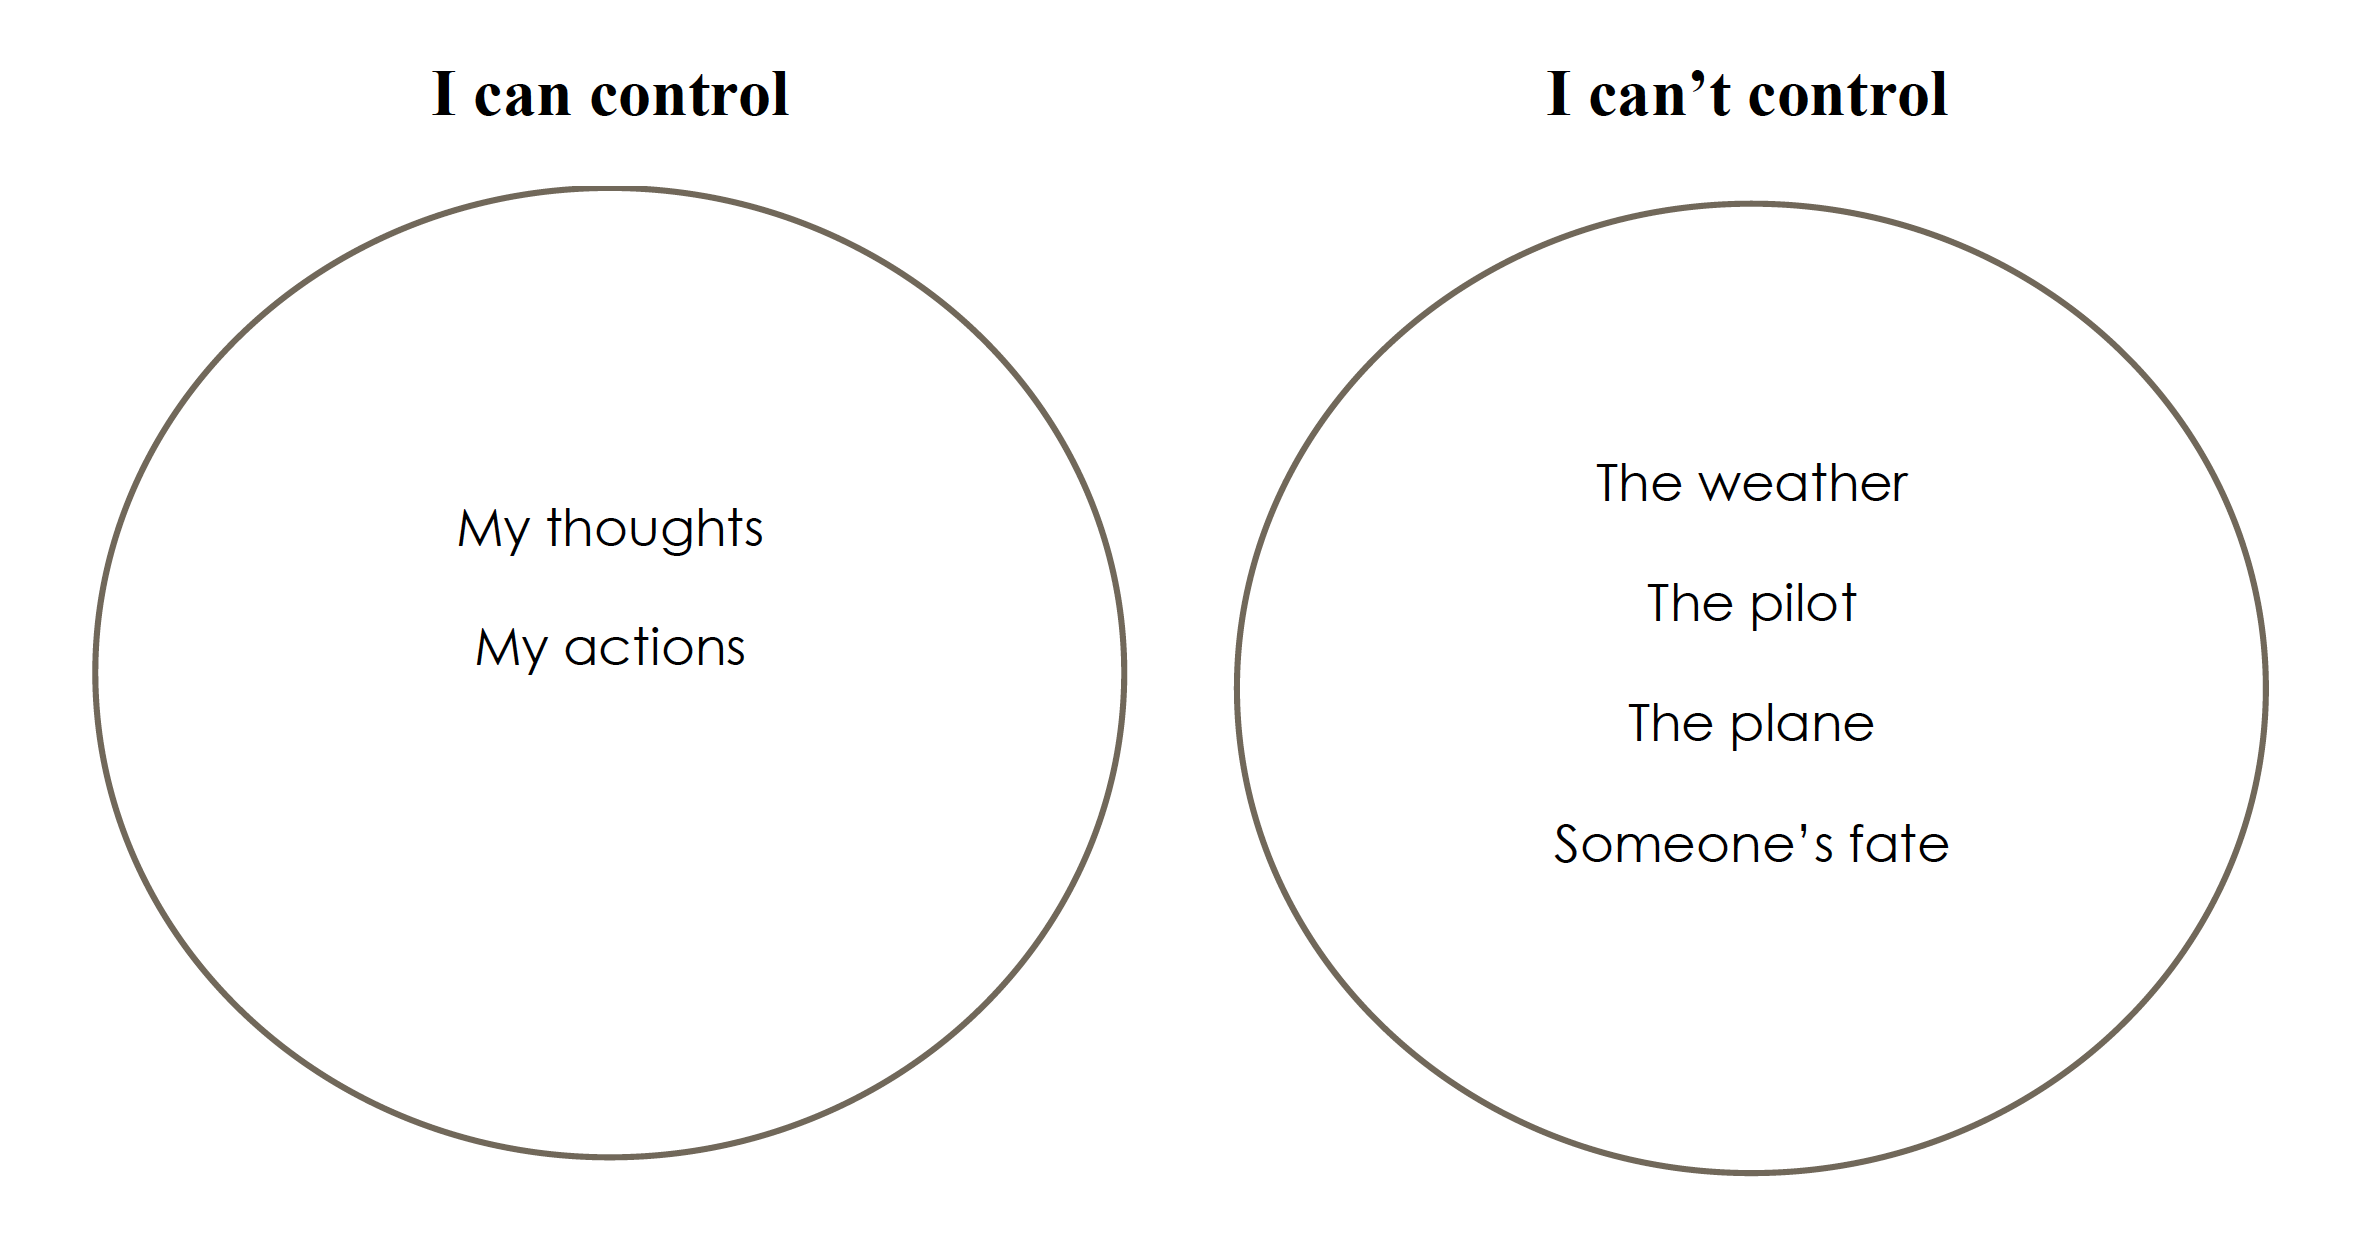 what I can and can't control